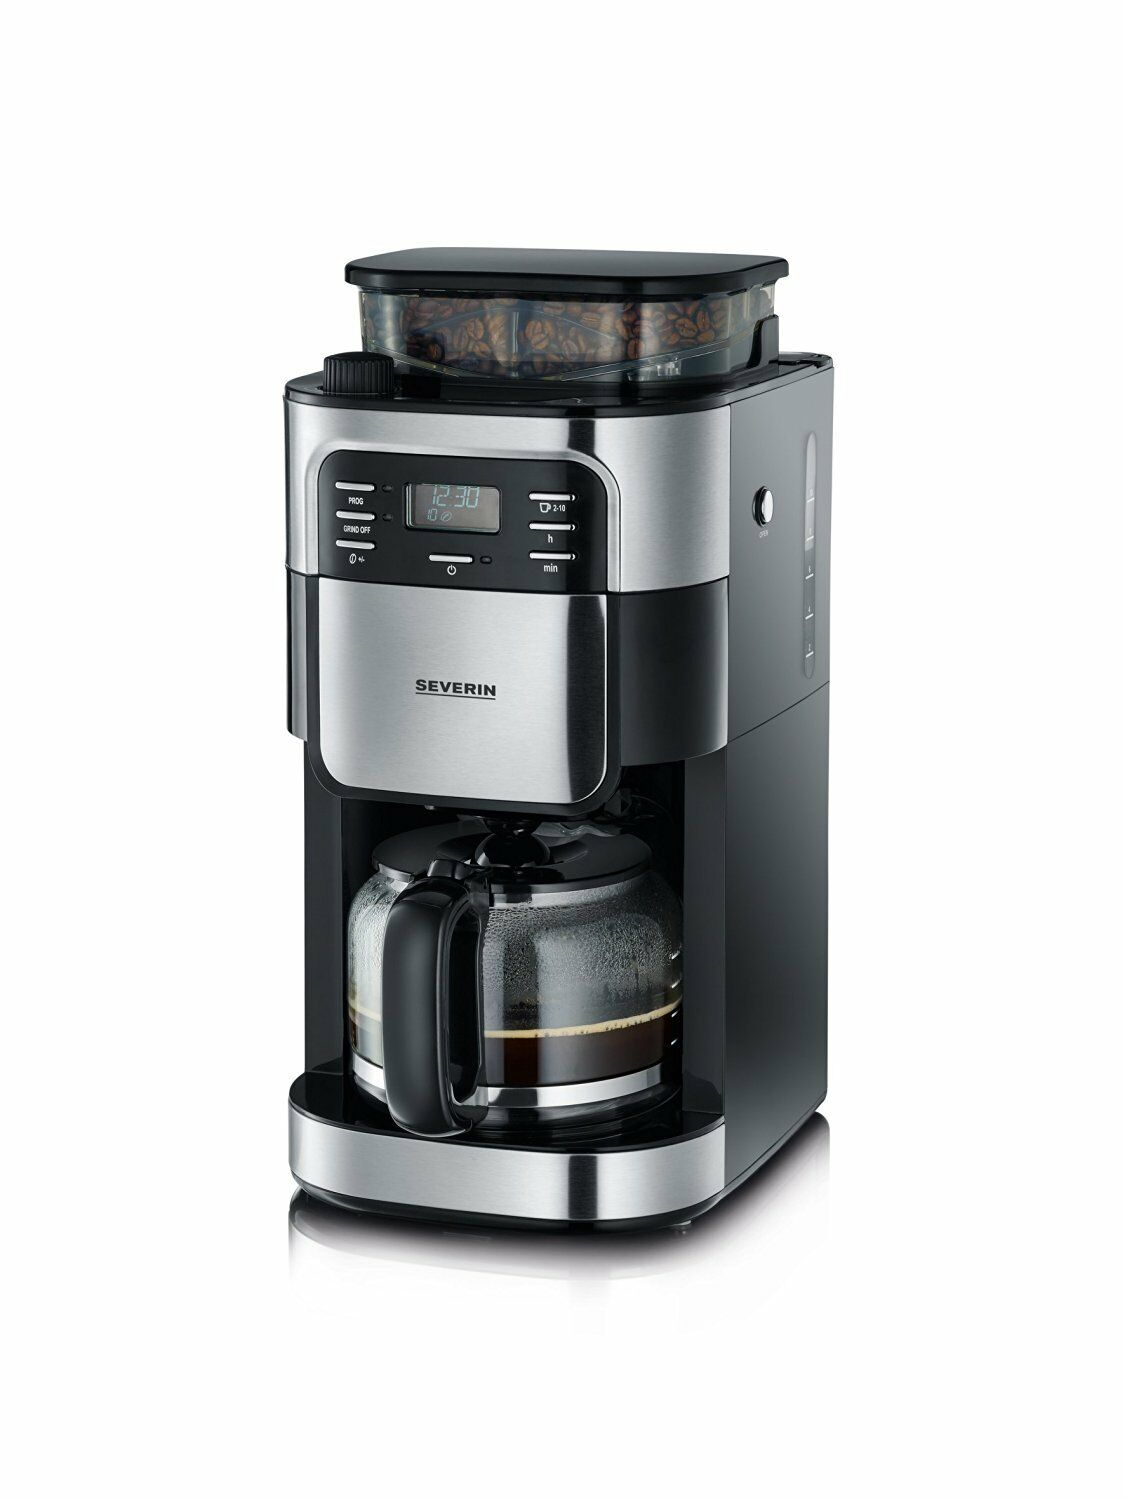 severin ka 4810 kaffeeautomat kaffeemaschine mit mahlwerk schwarz neu ovp eur 112 90. Black Bedroom Furniture Sets. Home Design Ideas